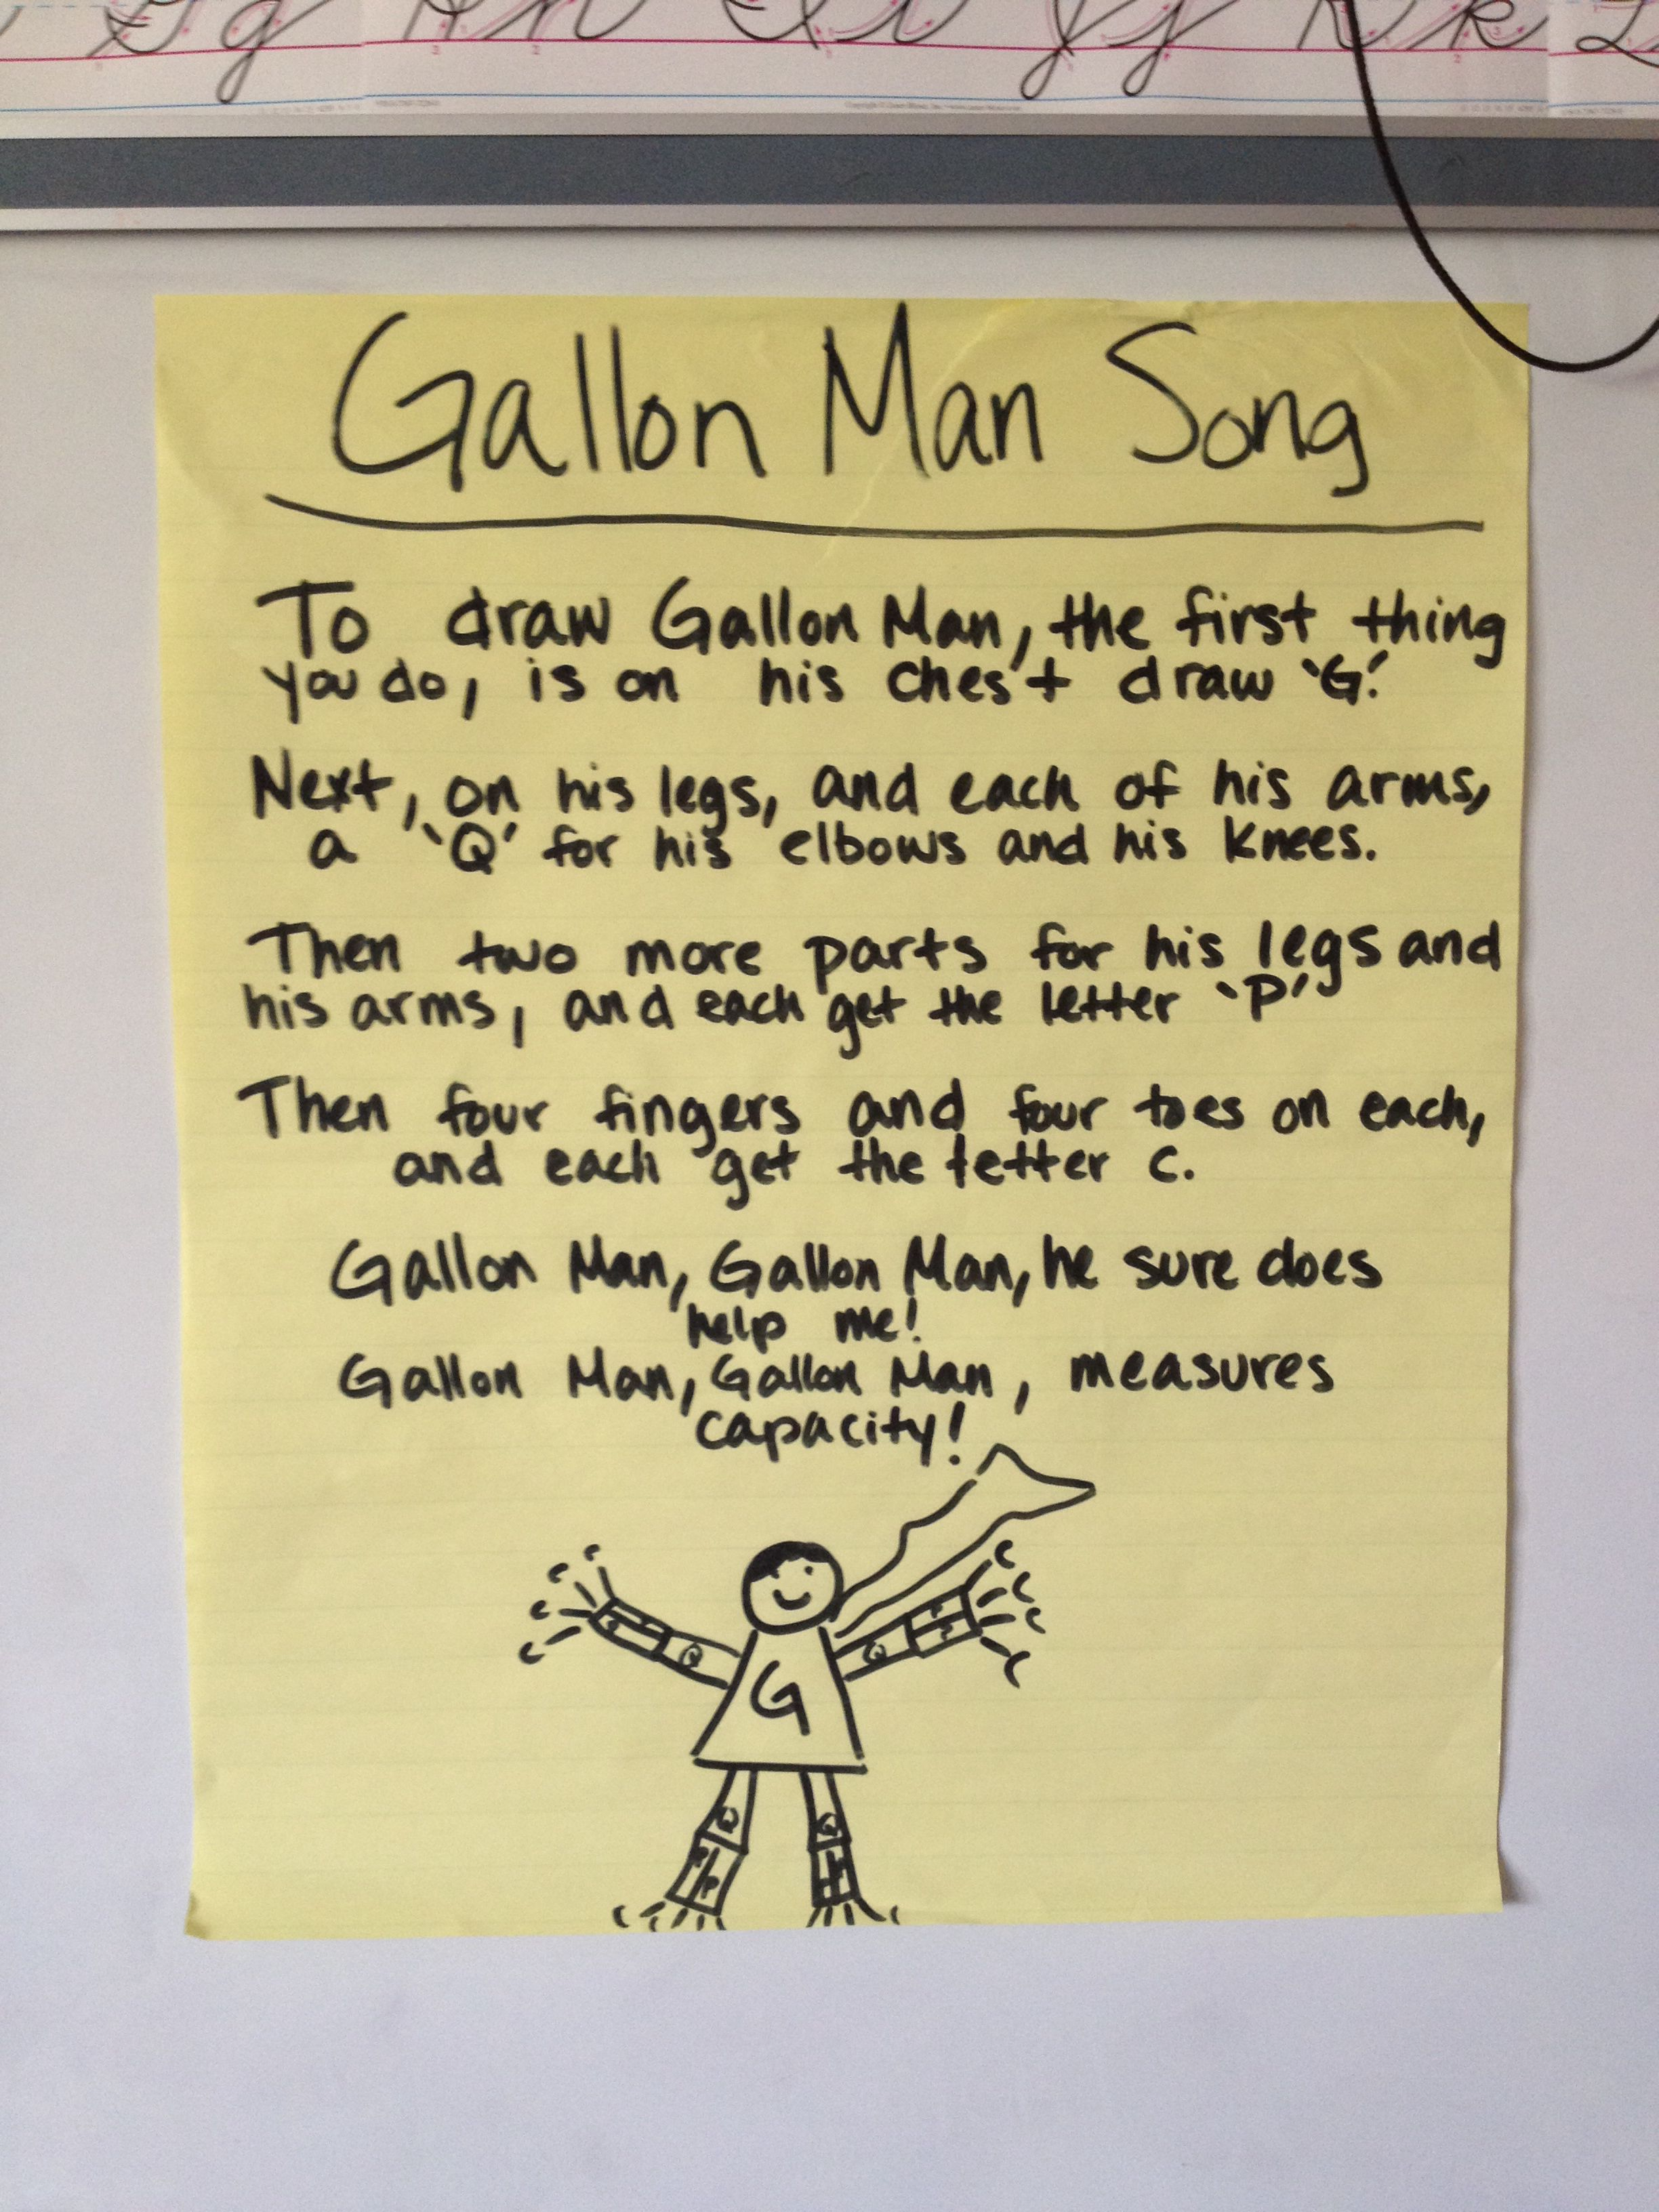 Gallon Man Song Gallonman Conversion Measurement